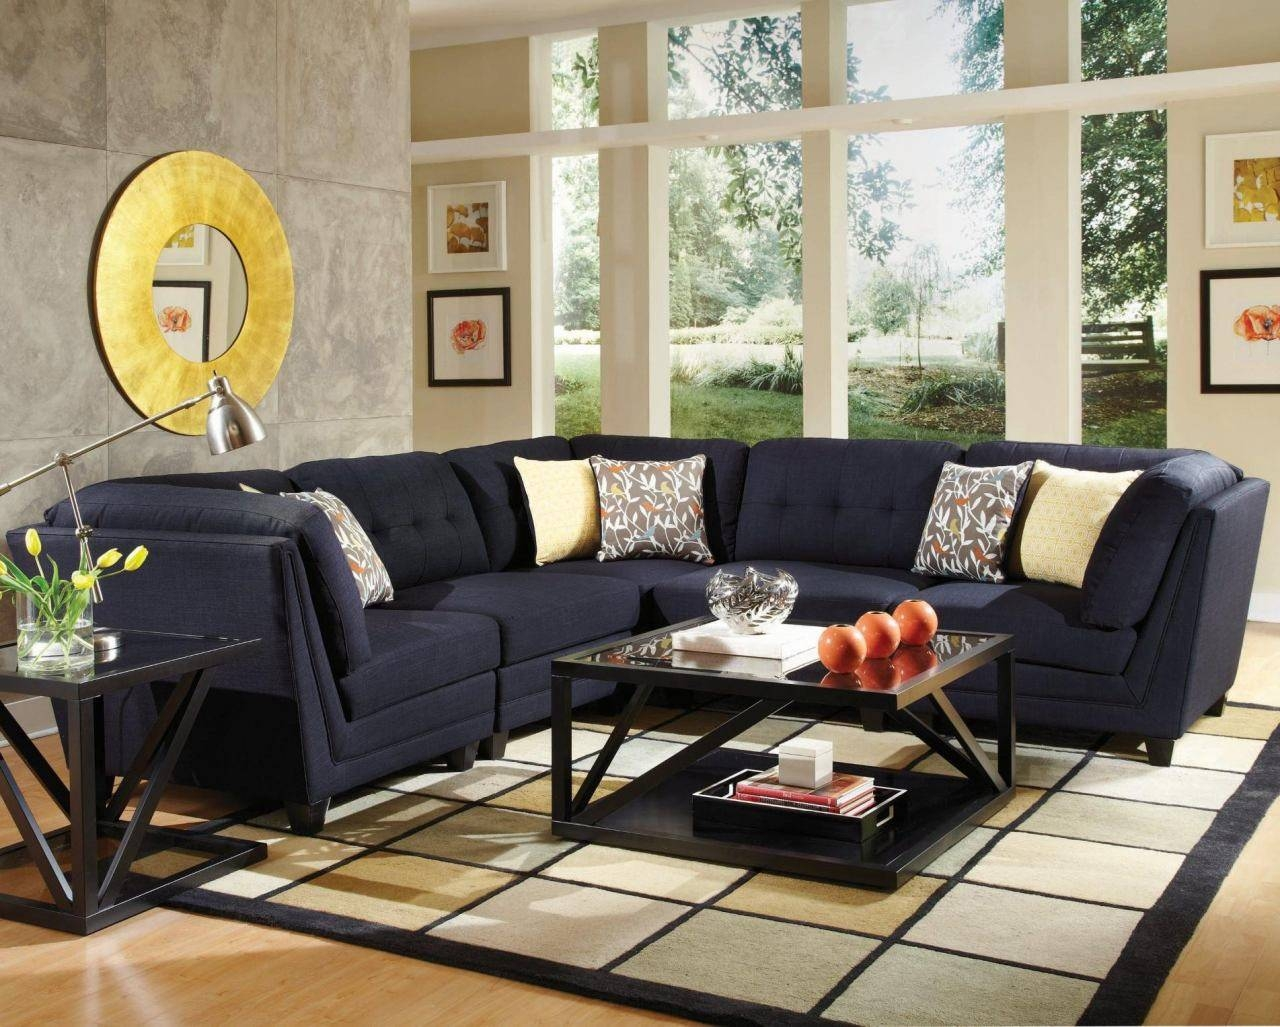 Keaton 5 Pc Sectional Living Room Set In Midnight Blue Throughout Midnight Blue Sofas (View 5 of 15)